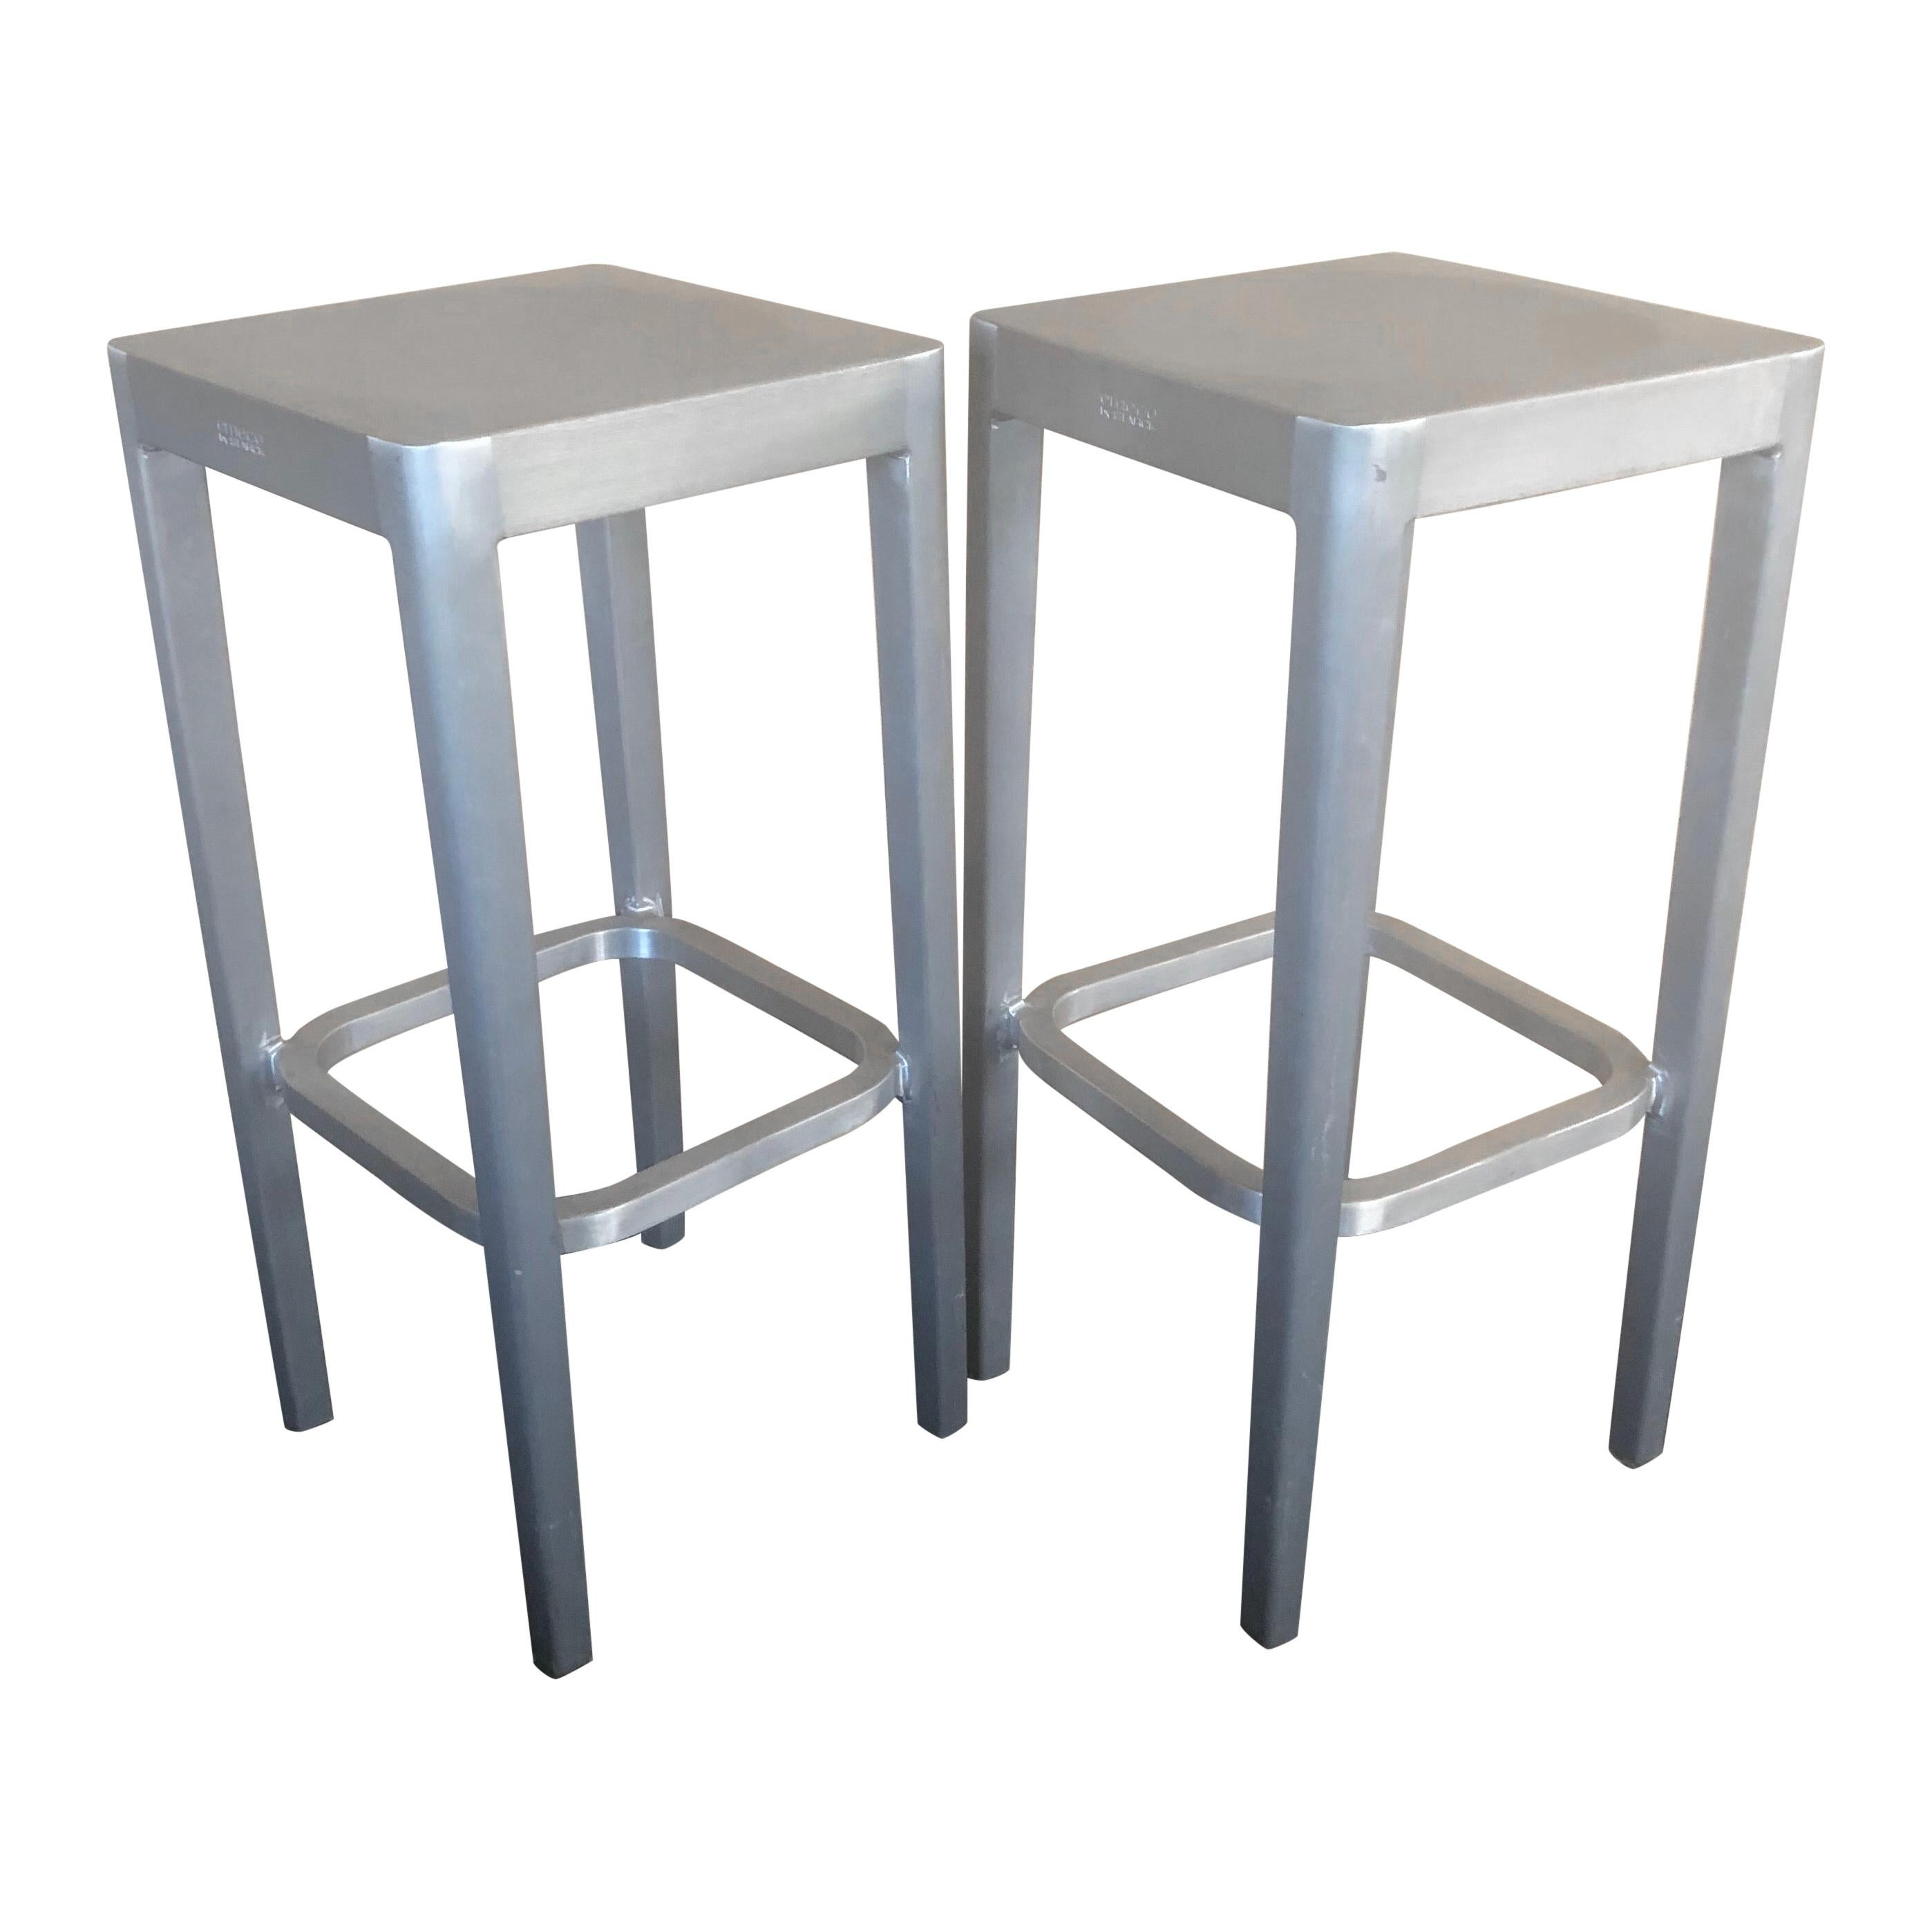 Pair of Brushed Aluminum Bar Stools by Philippe Starck for Emeco